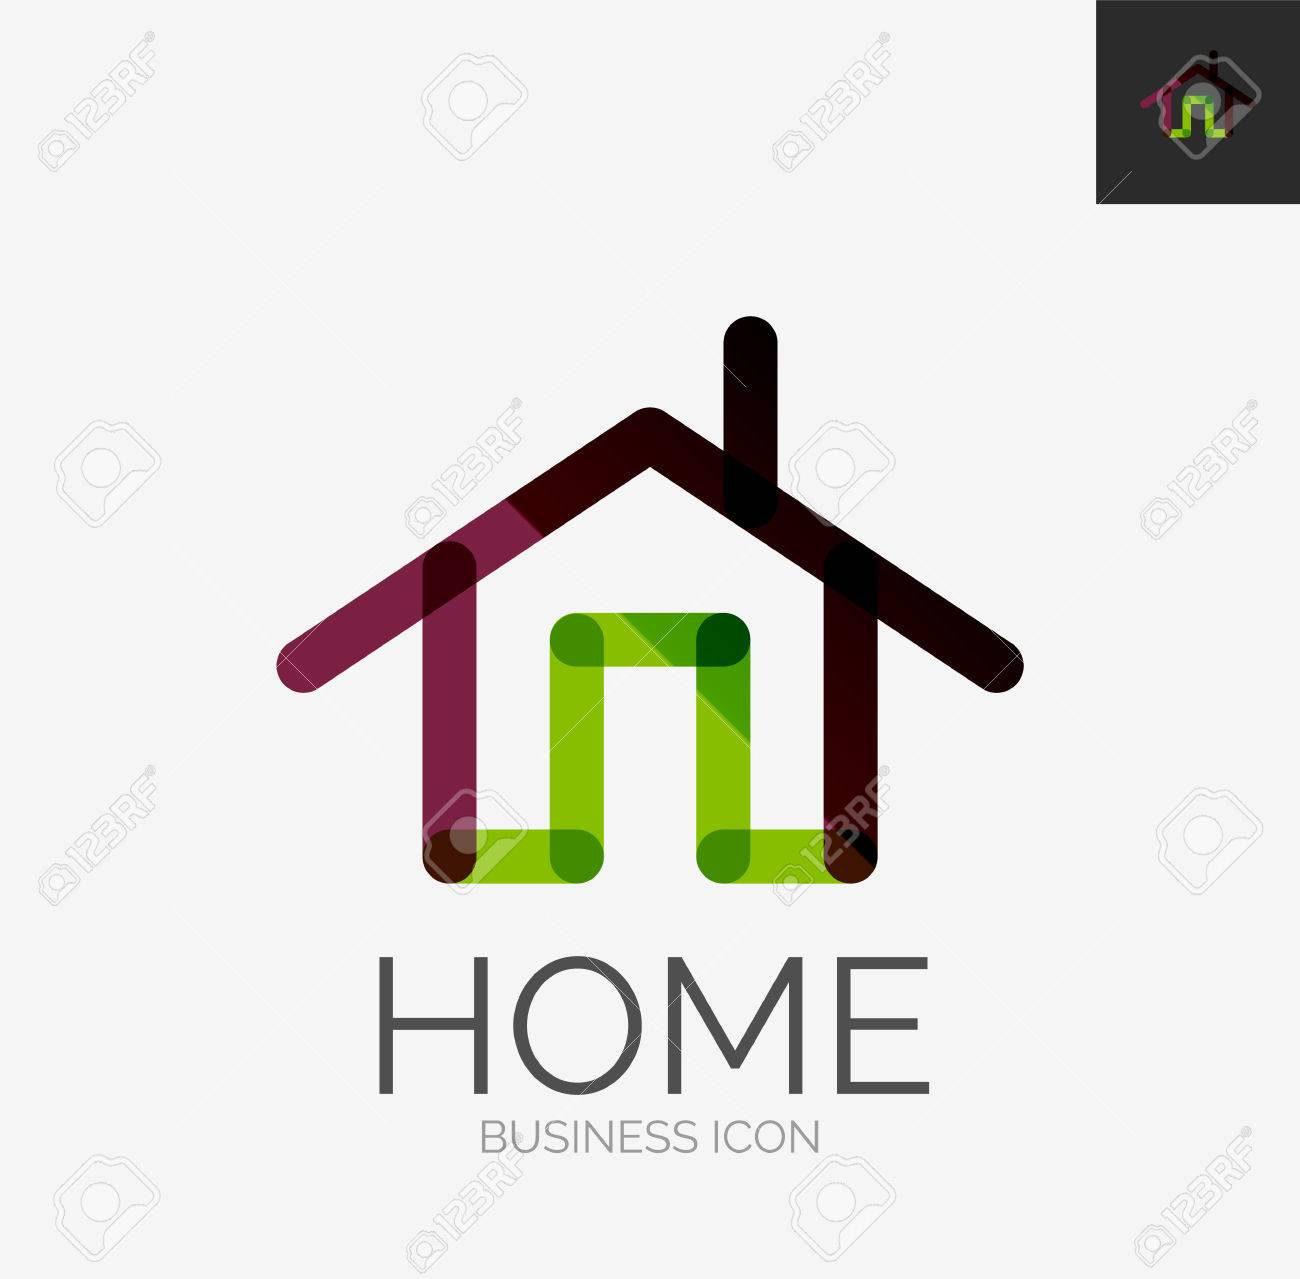 minimal line design logo home icon royalty free cliparts vectors rh 123rf com home icon vector free download home icon vector free download